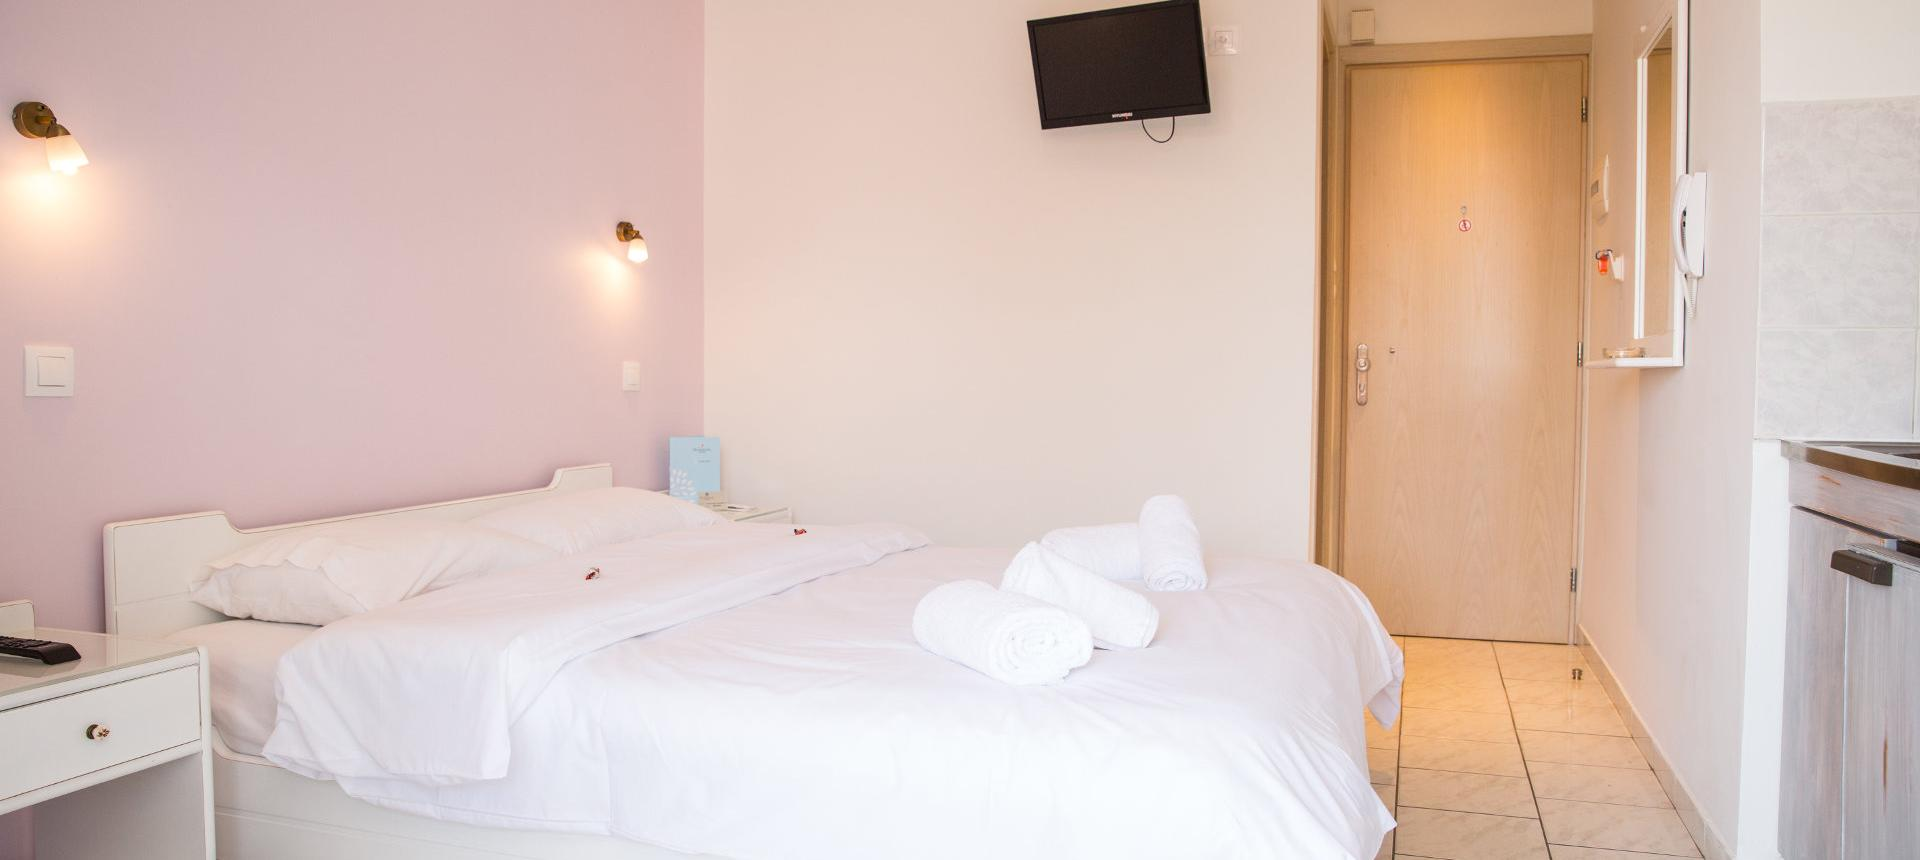 Double room - DionissiouBeach